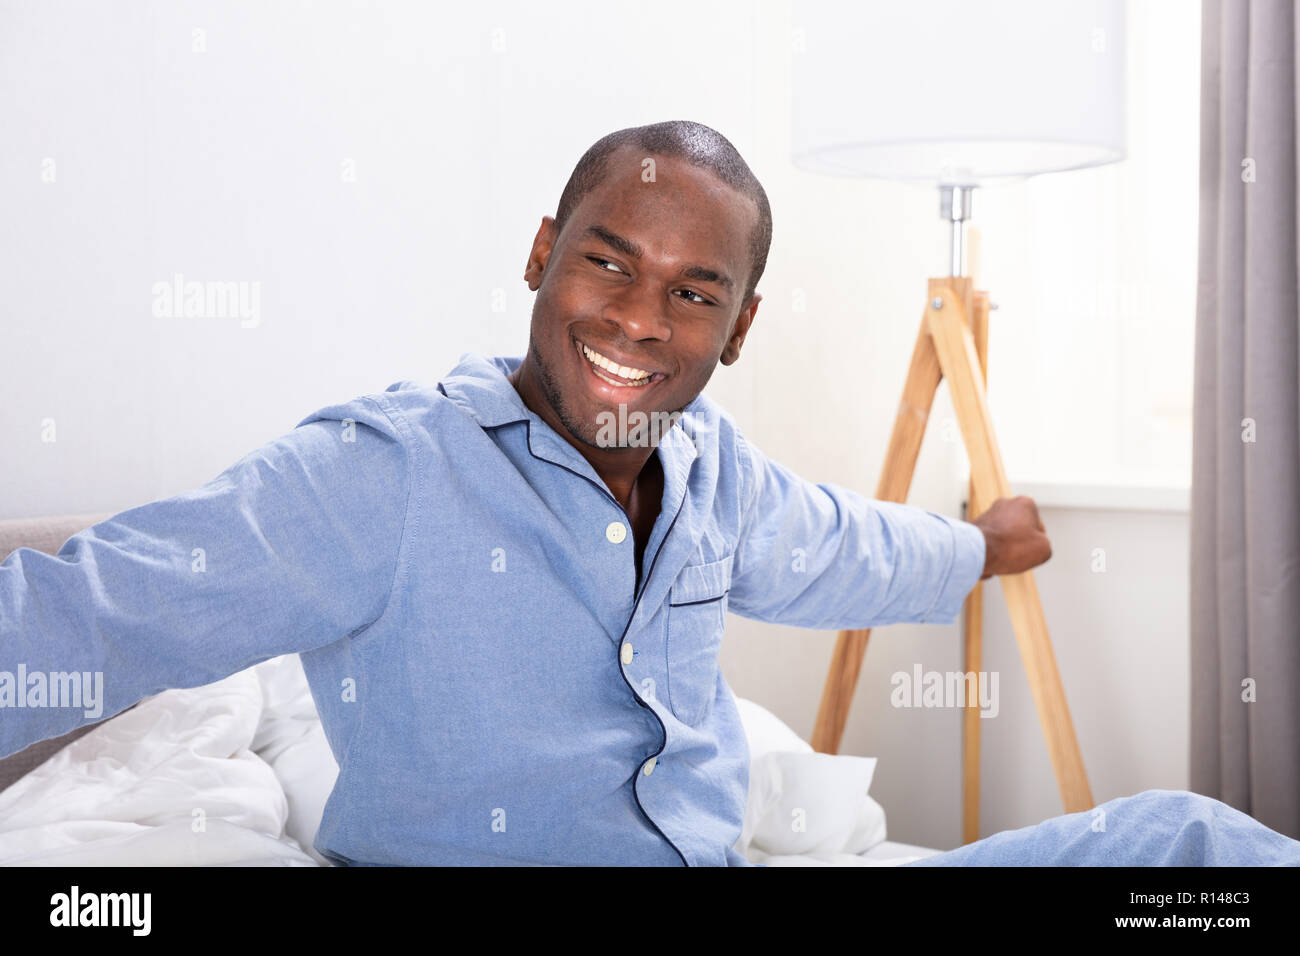 Portrait Of A Happy Young African Man Sitting on Bed Banque D'Images